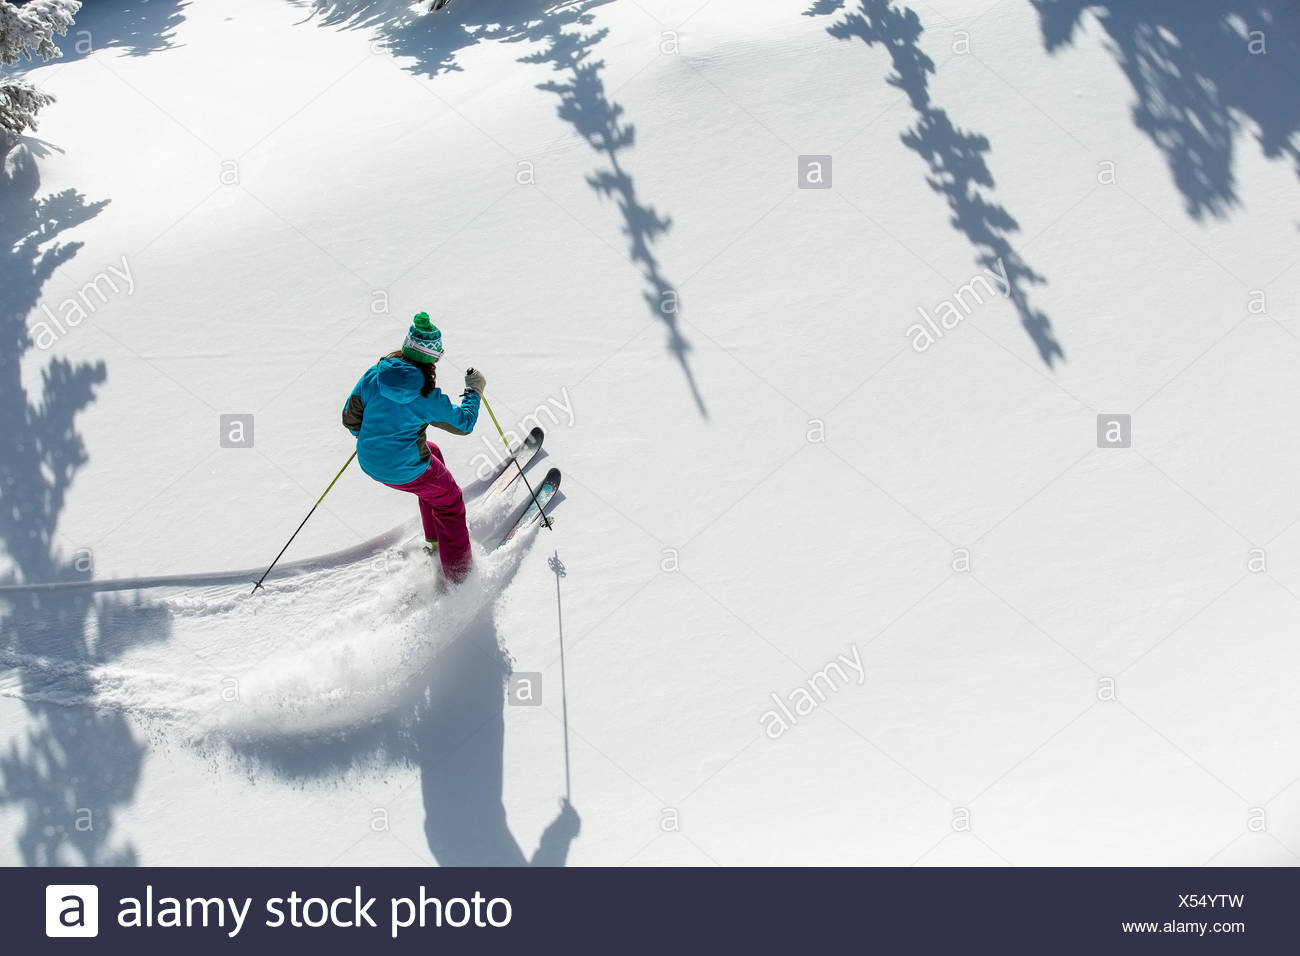 Elevated view of woman skiing - Stock Image